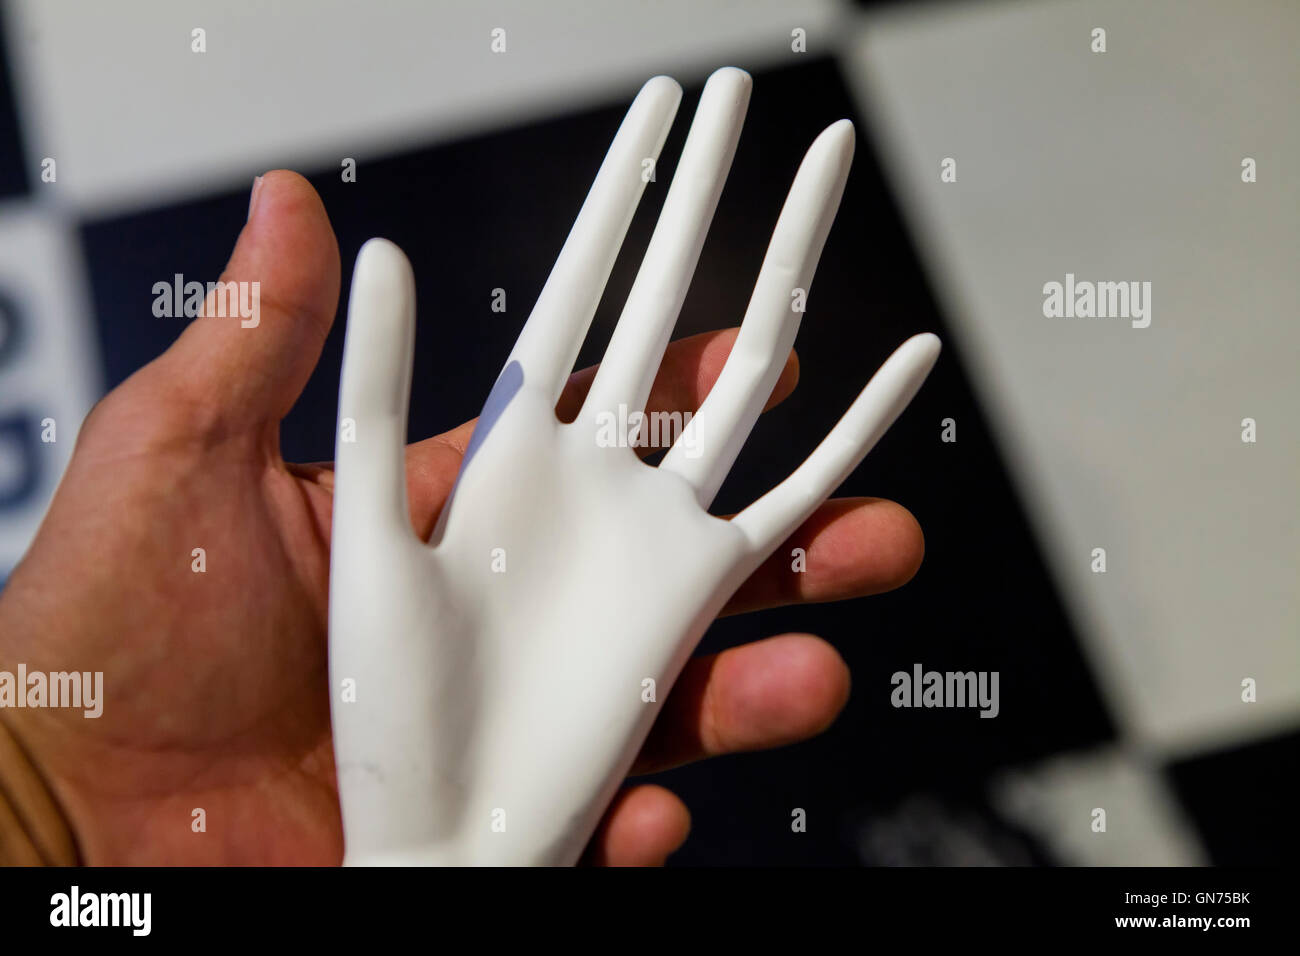 Man holding skinny mannequin hand Stock Photo: 116327895 - Alamy